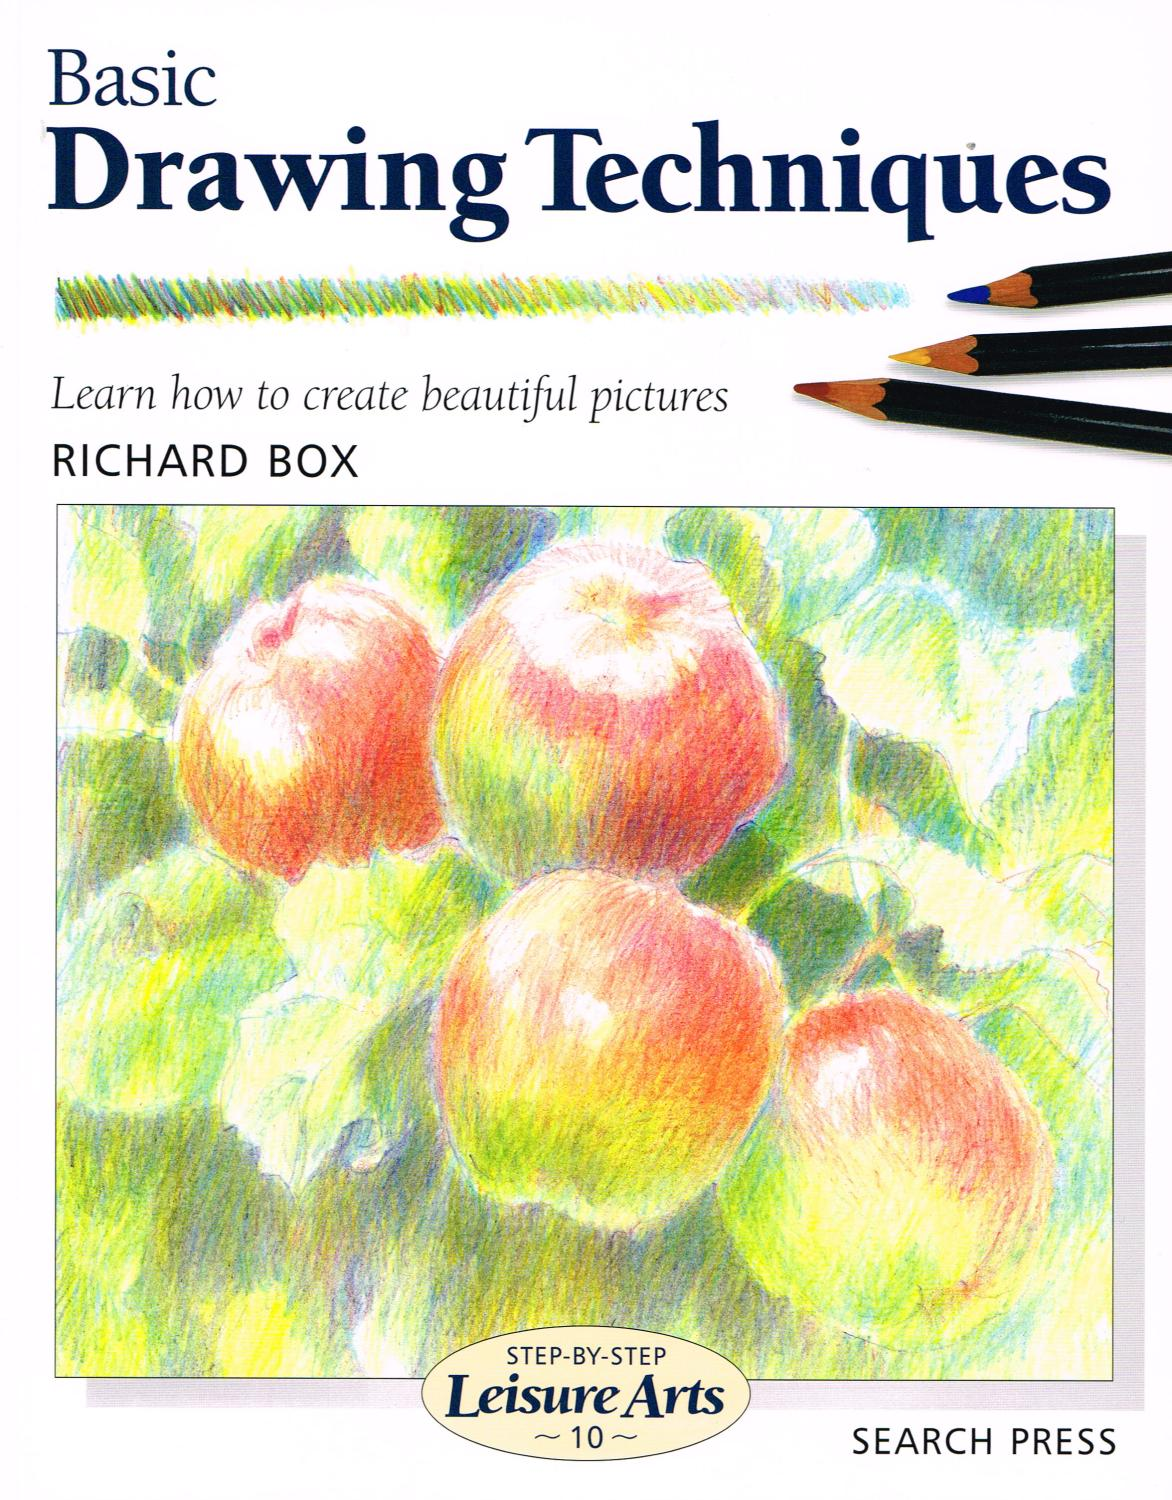 Watercolor books by search press - Basic Drawing Techniques Step By Step Leisure Arts By Richard Box Search Press Publishing 9780855328429 Soft Cover Sapphire Books